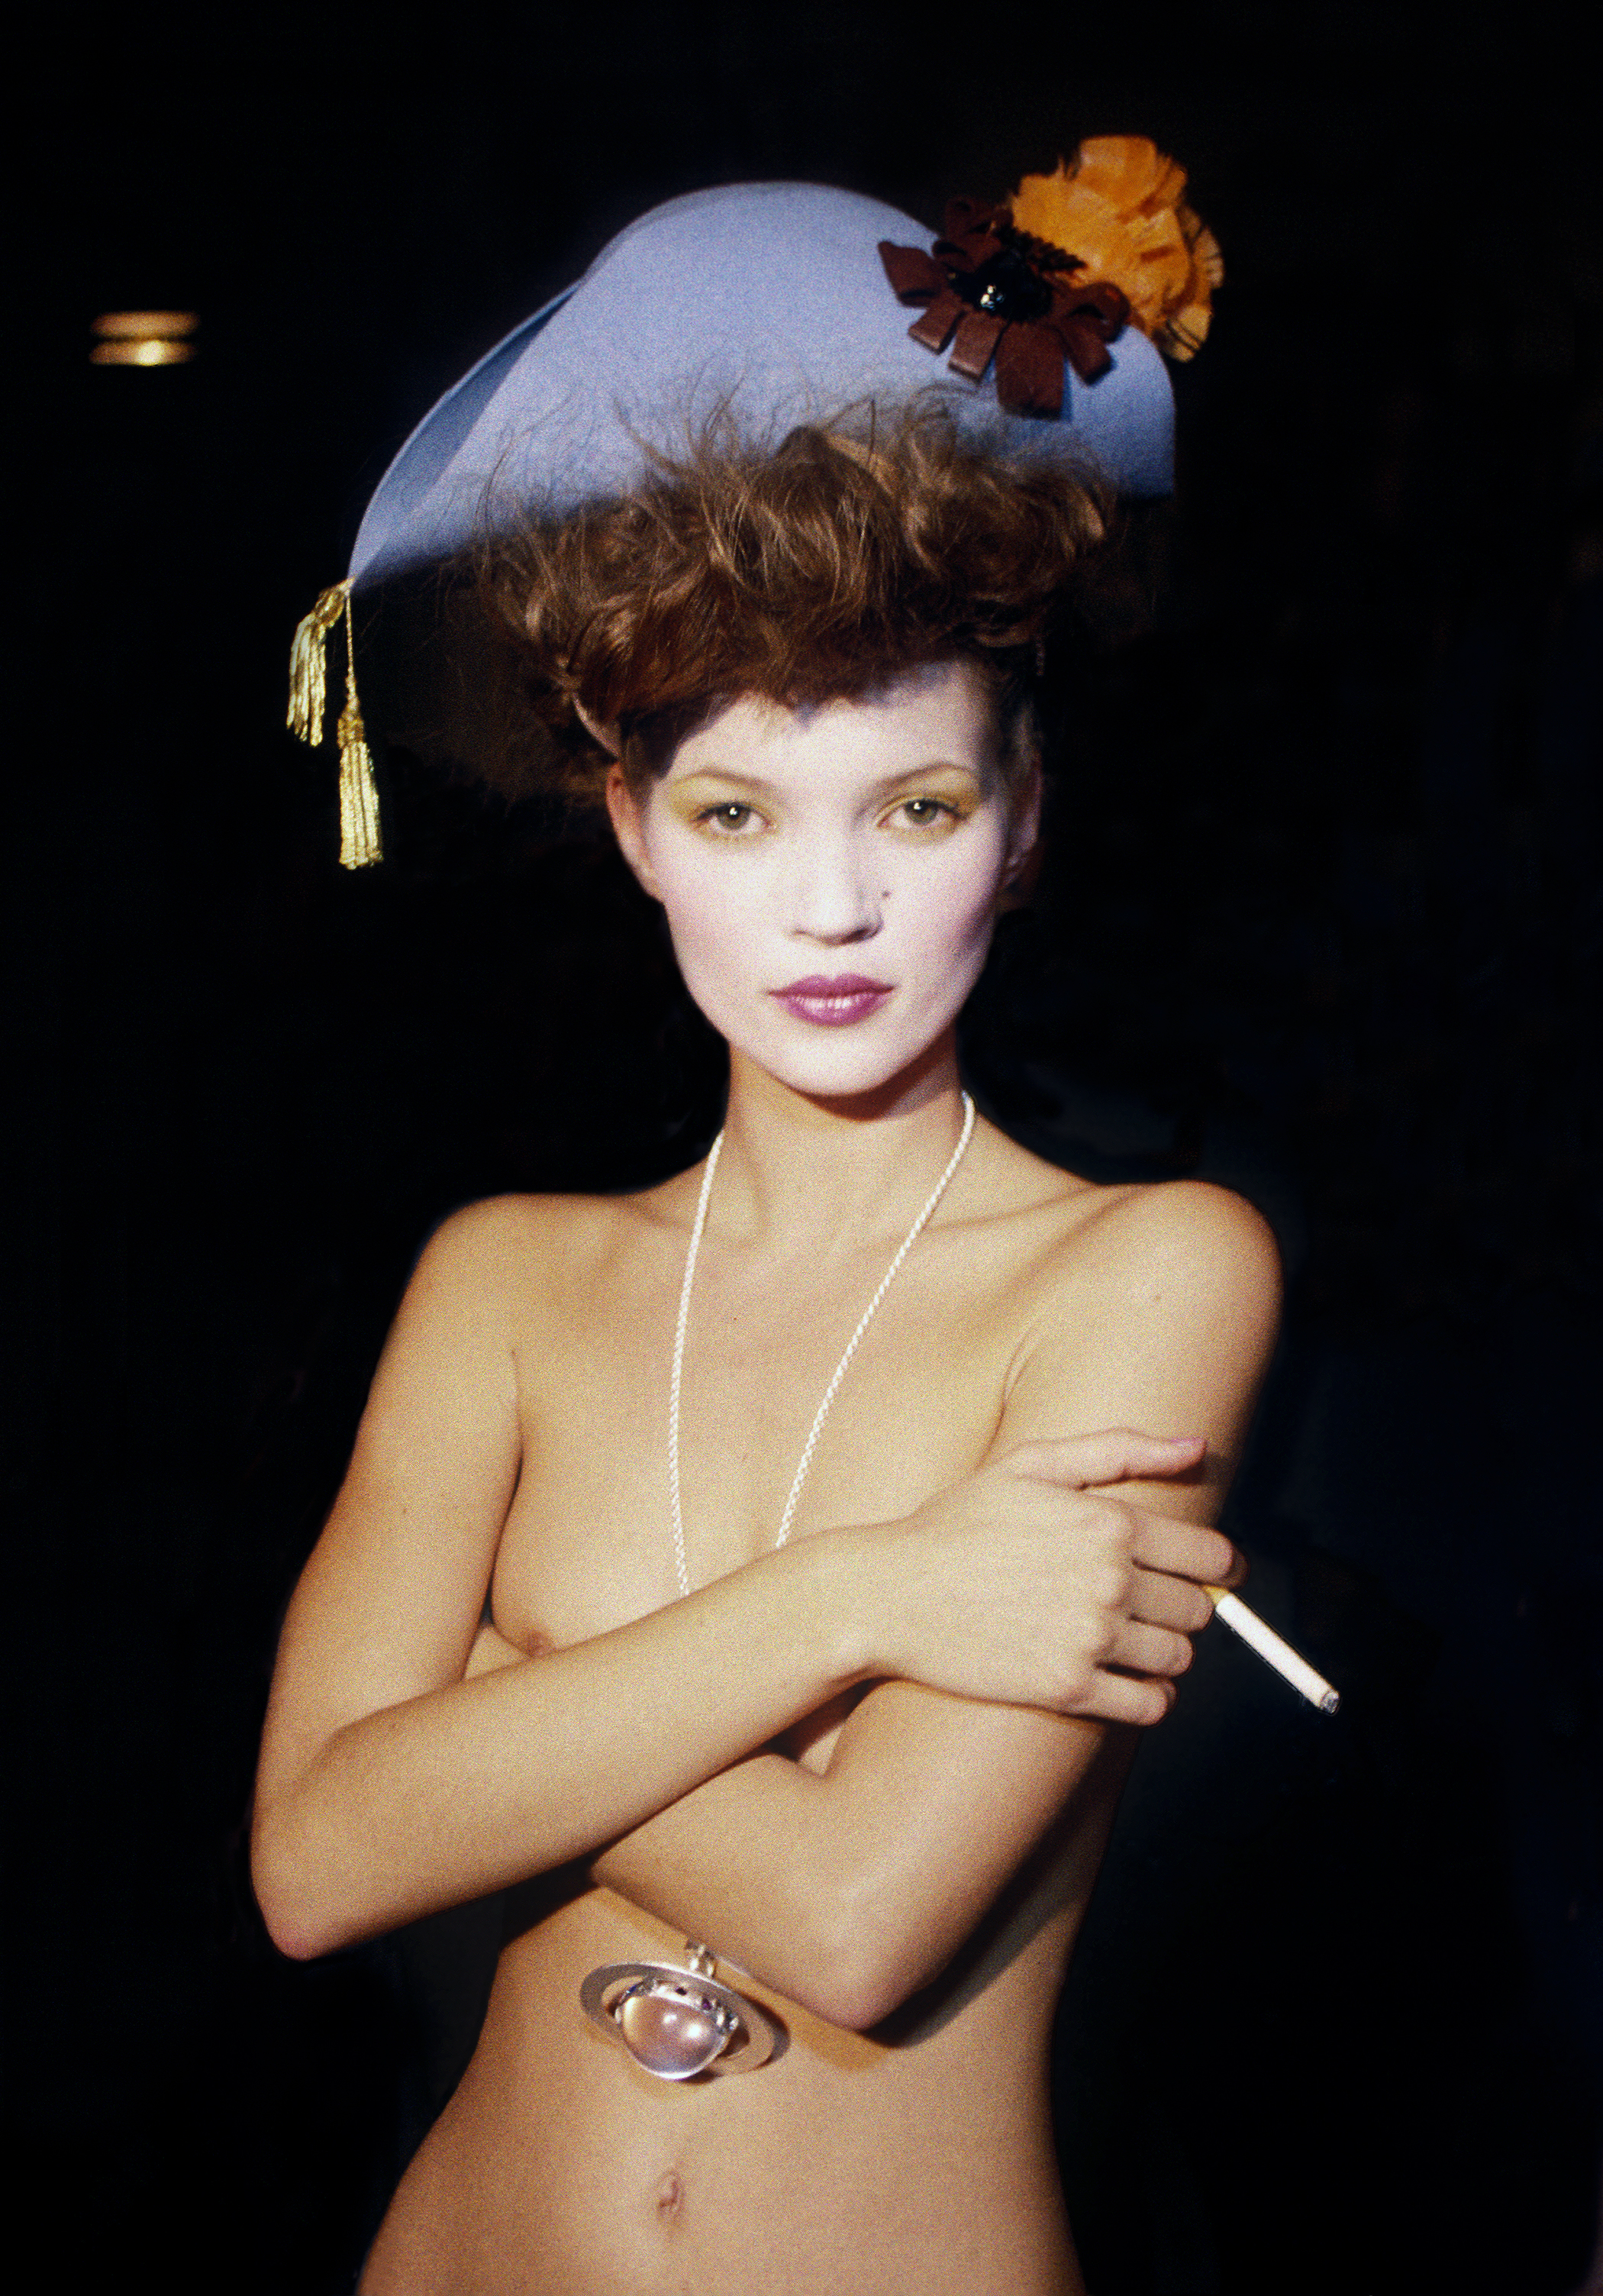 Kate Moss in HARRY BENSON: SHOOT FIRST, a Magnolia Pictures release. Photo courtesy of Magnolia Pictures. Photo Credit: © Harry Benson.